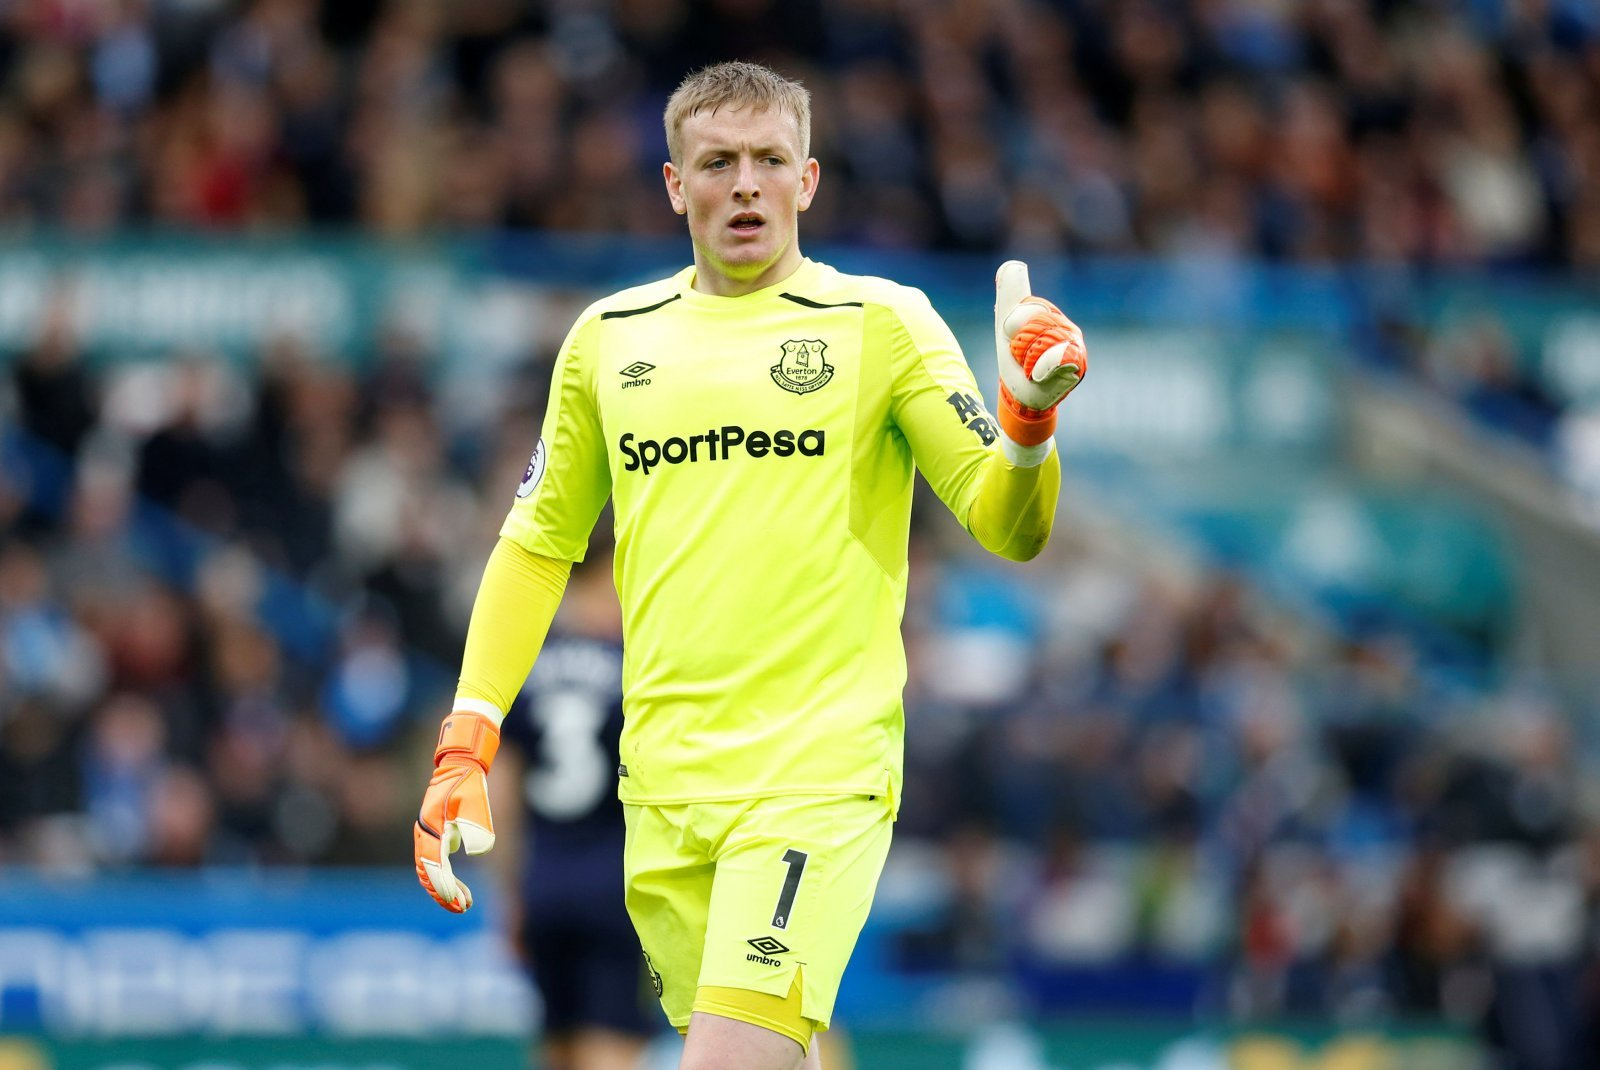 Chelsea fans want Jordan Pickford to replace Thibaut Courtois this summer